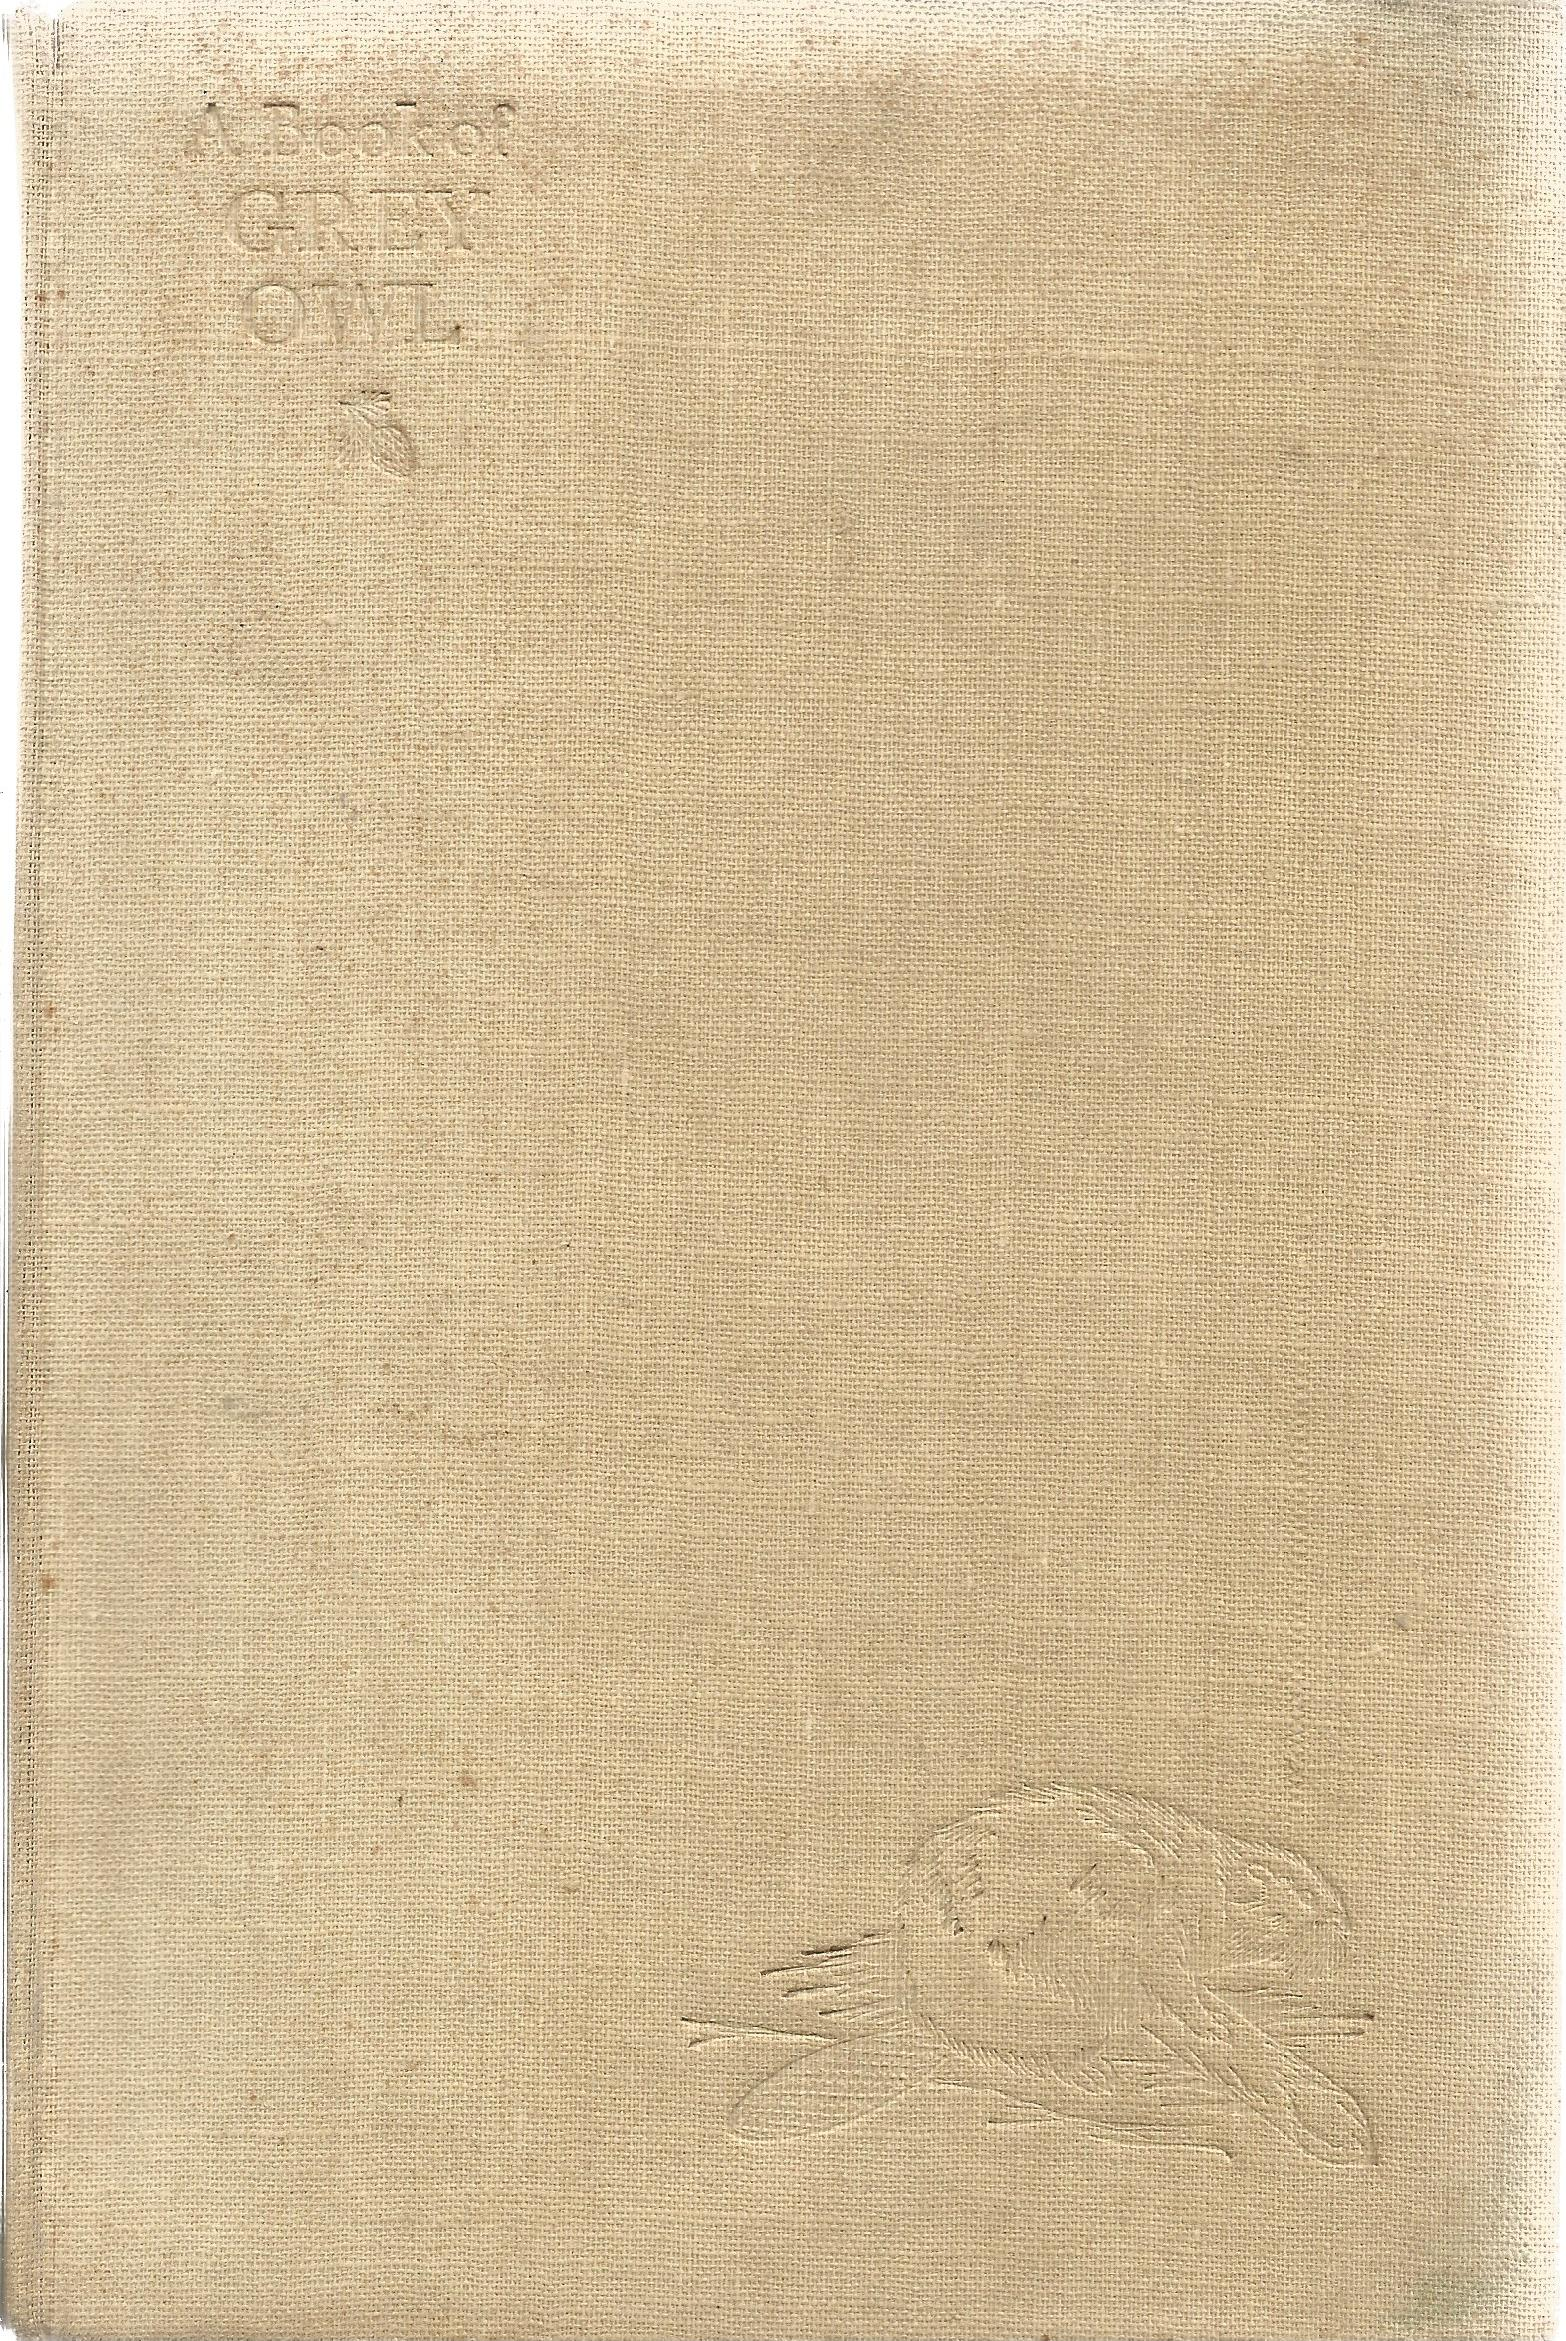 2 Hardback Books A Book of Grey Owl by E E Reynolds & Grey Owl and the Beaver by Harper Cory First